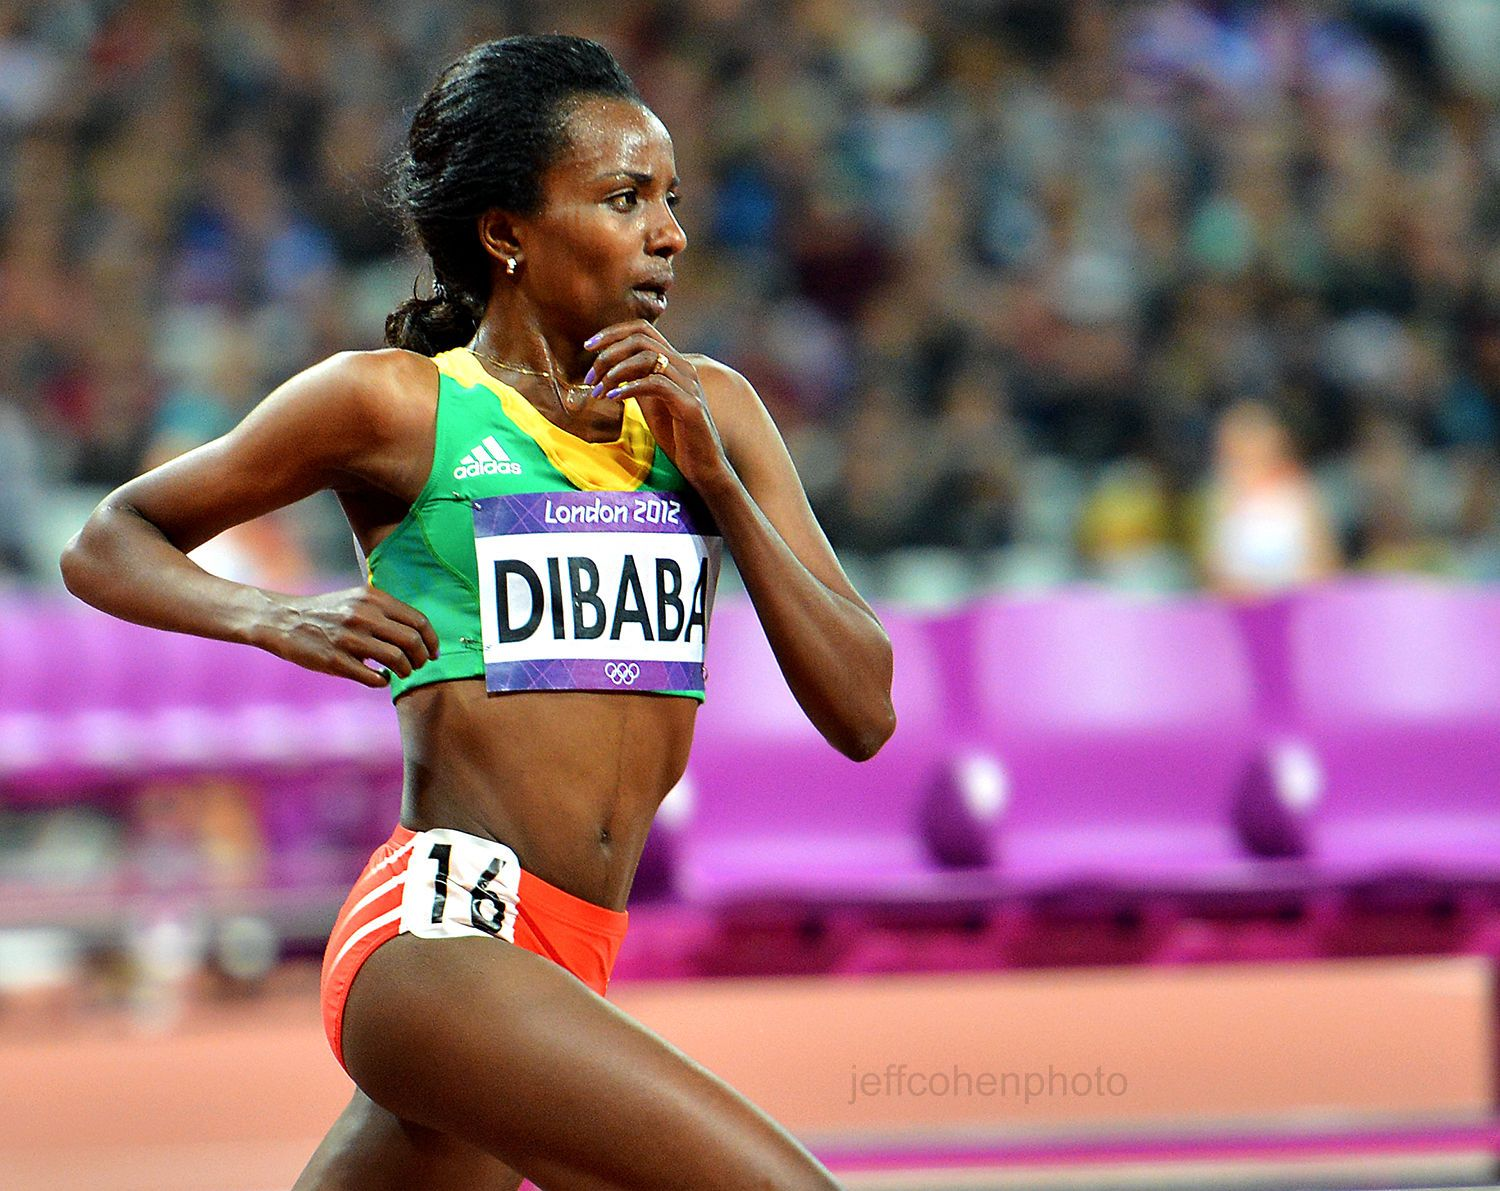 1london2012_dibaba_10k_jeffcohenphoto__web.jpg